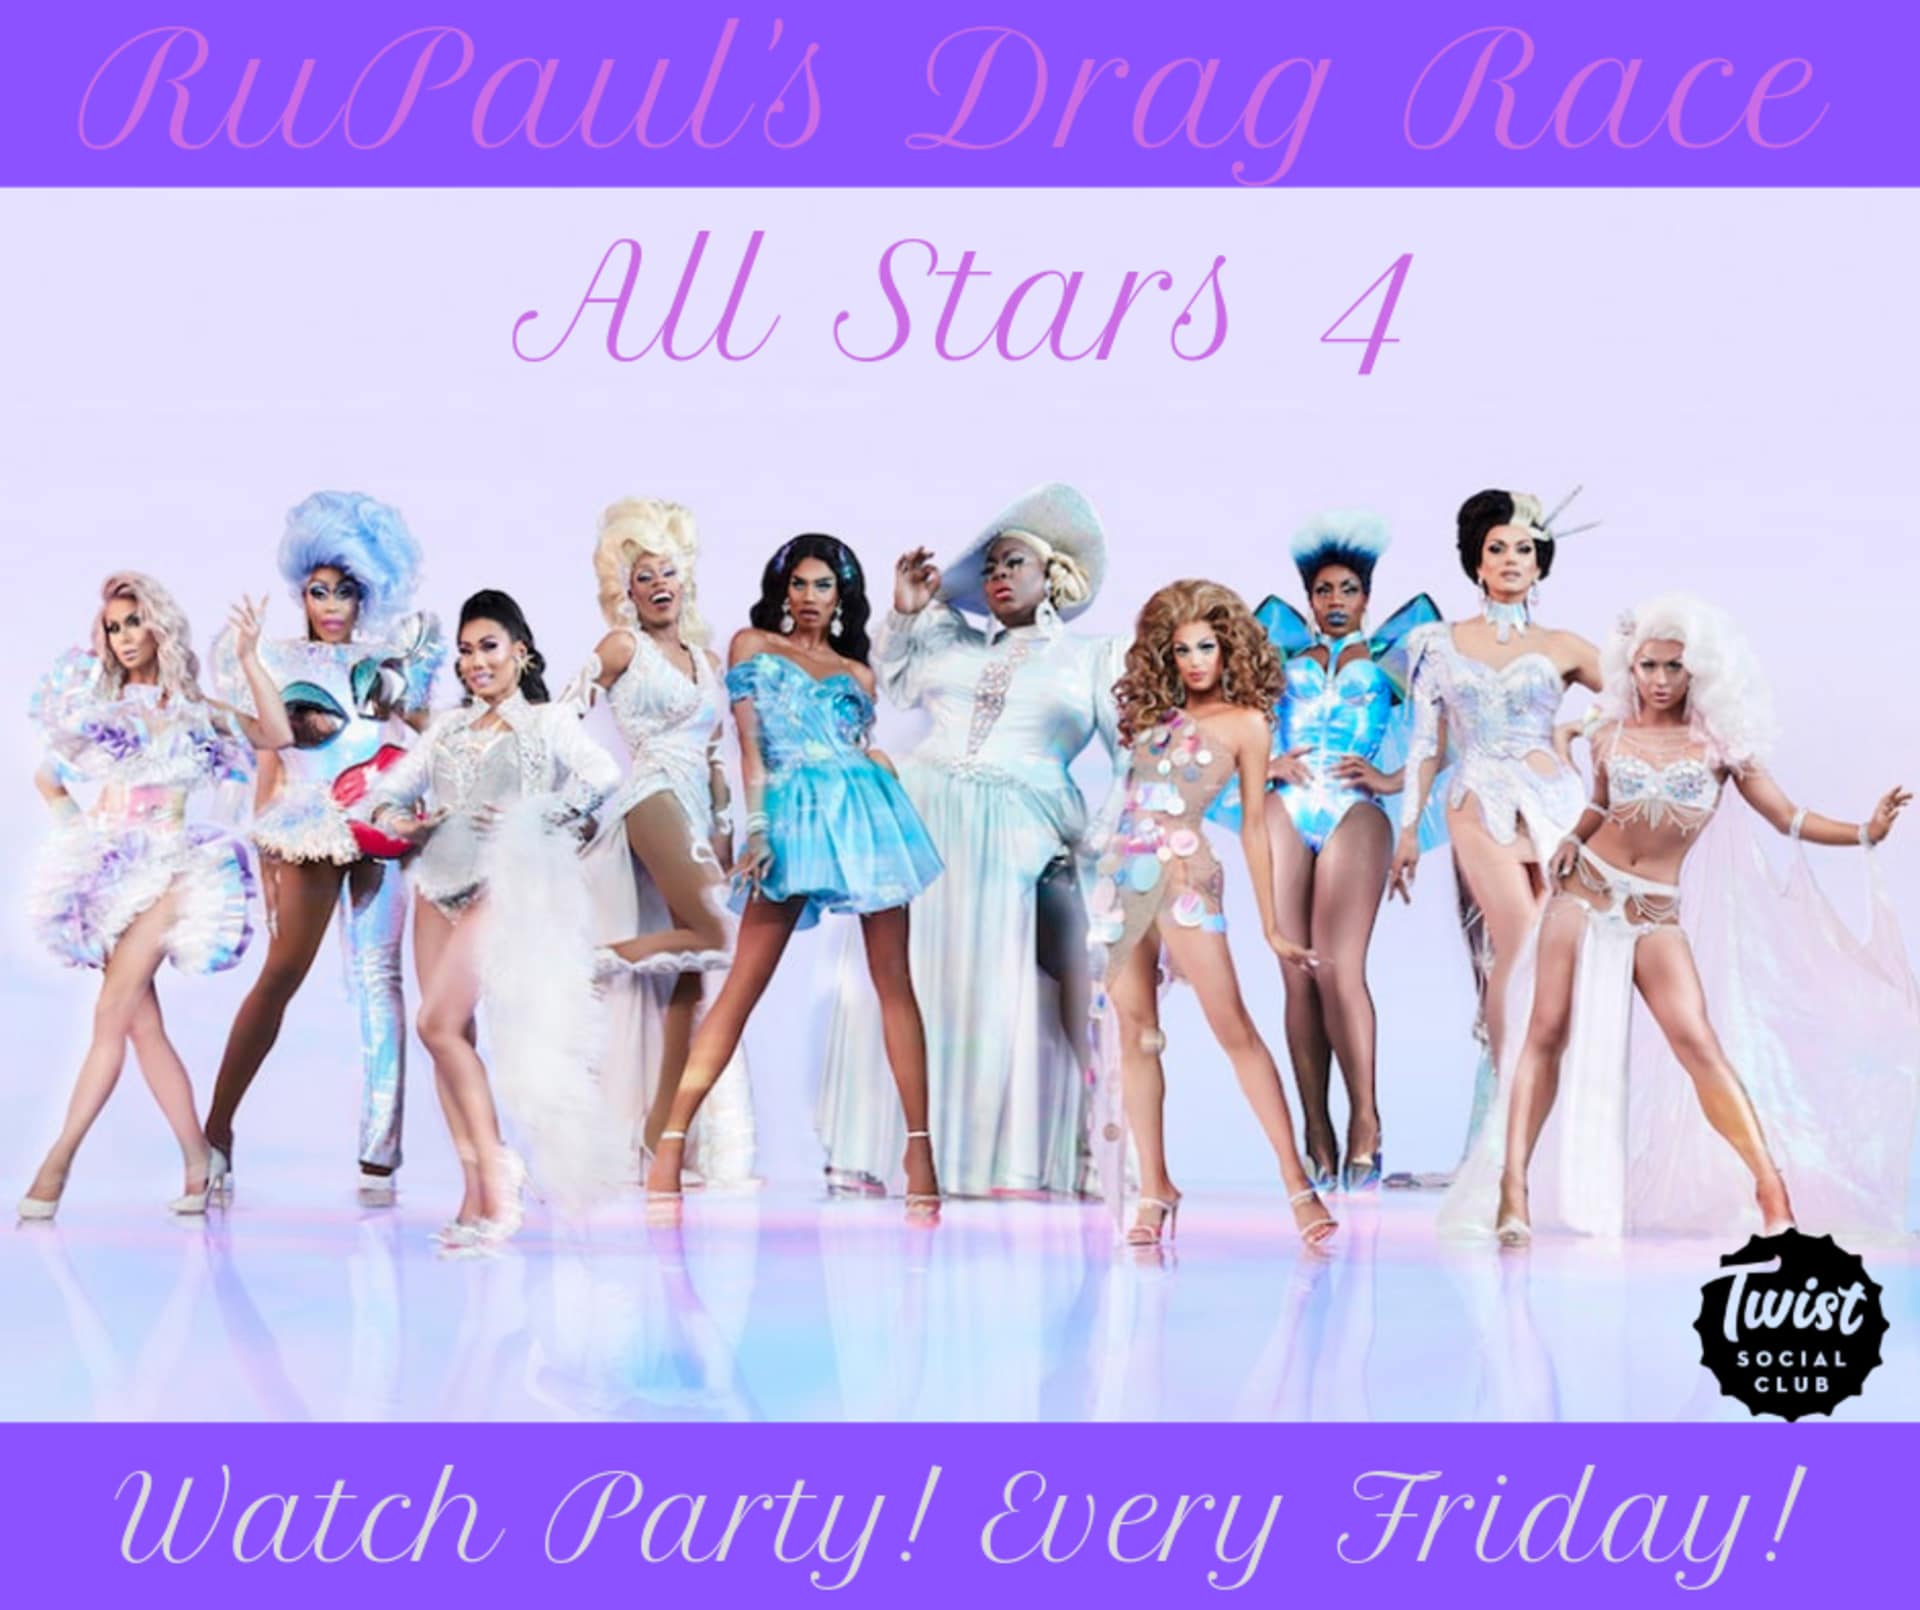 RuPaul's Drag Race All Stars 4: Watch Party